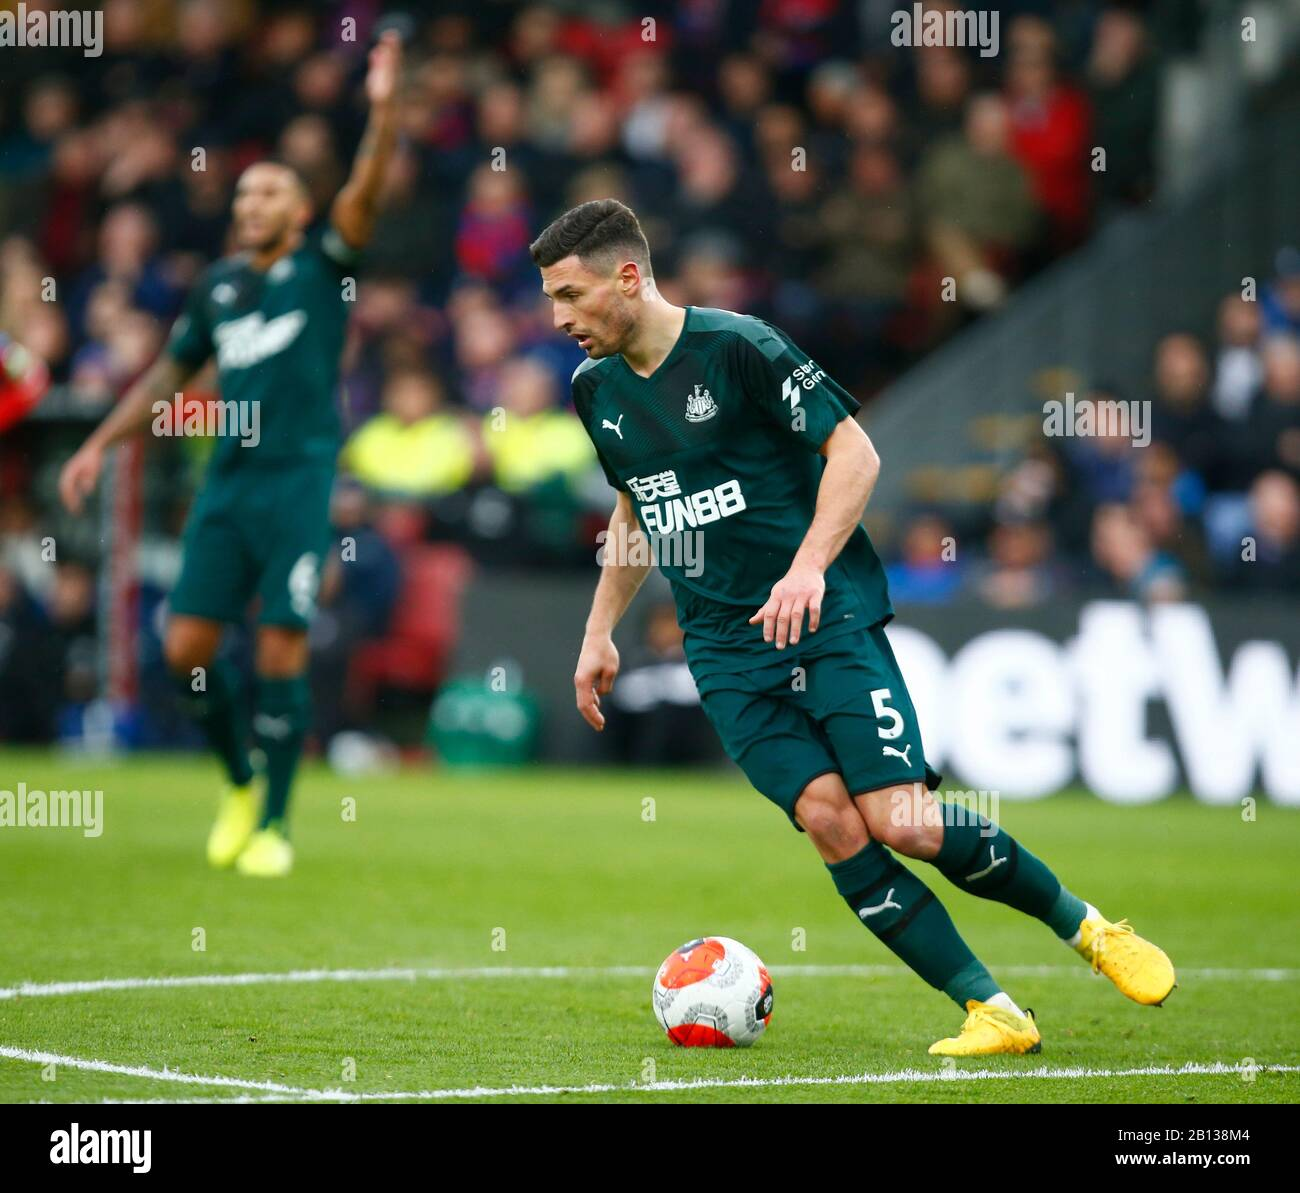 LONDON, UNITED KINGDOM. FEBRUARY 22 Newcastle United's Fabian Schar during English Premier League between Crystal Palace and Newcastle United at Selhurst Park Stadium, London, England on 22 February 2020 Credit: Action Foto Sport/Alamy Live News Stock Photo